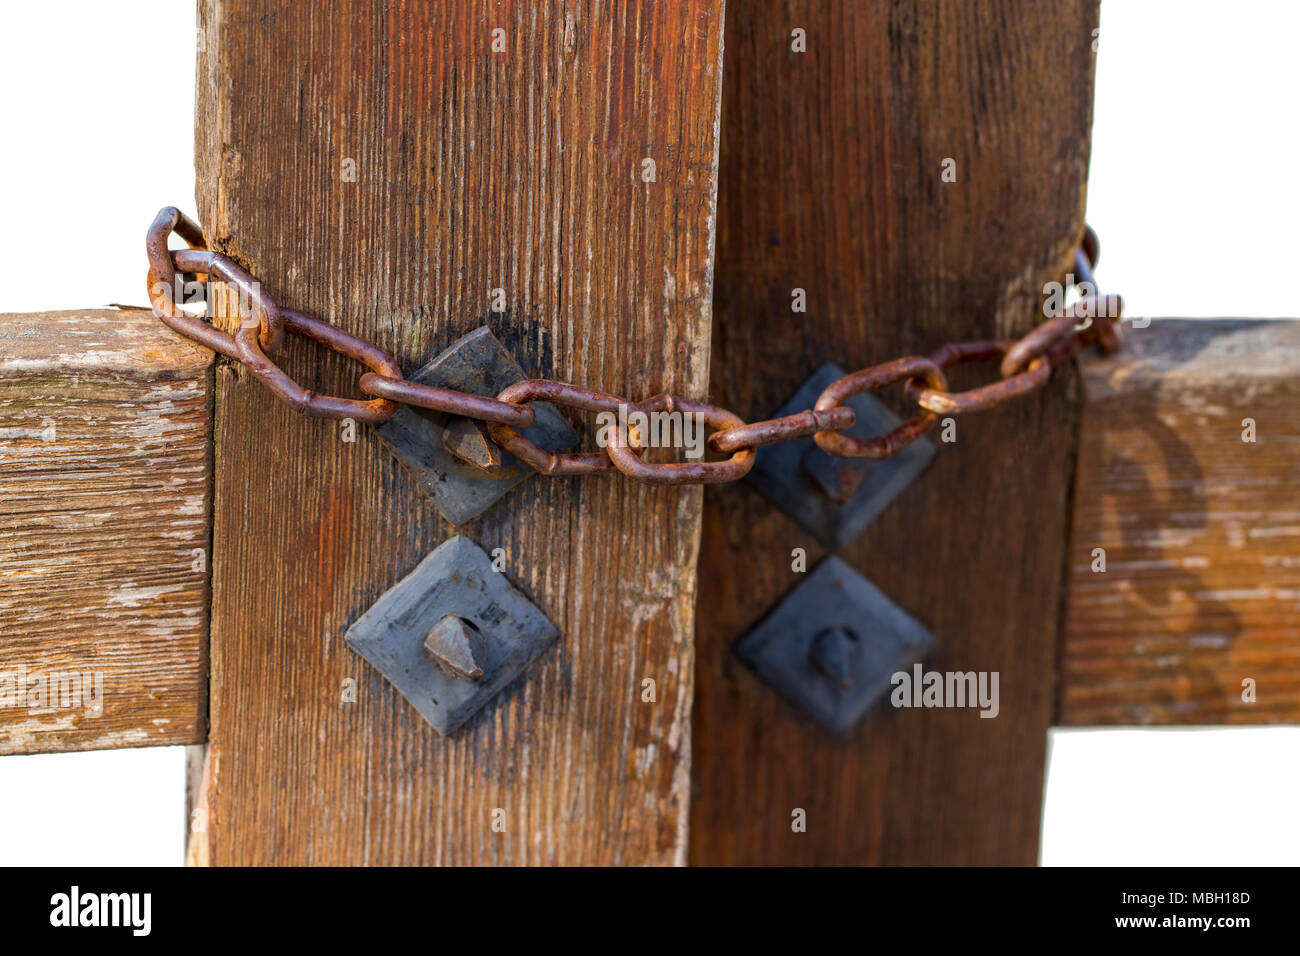 Hand Chain Link Fence Stock Photos Amp Hand Chain Link Fence